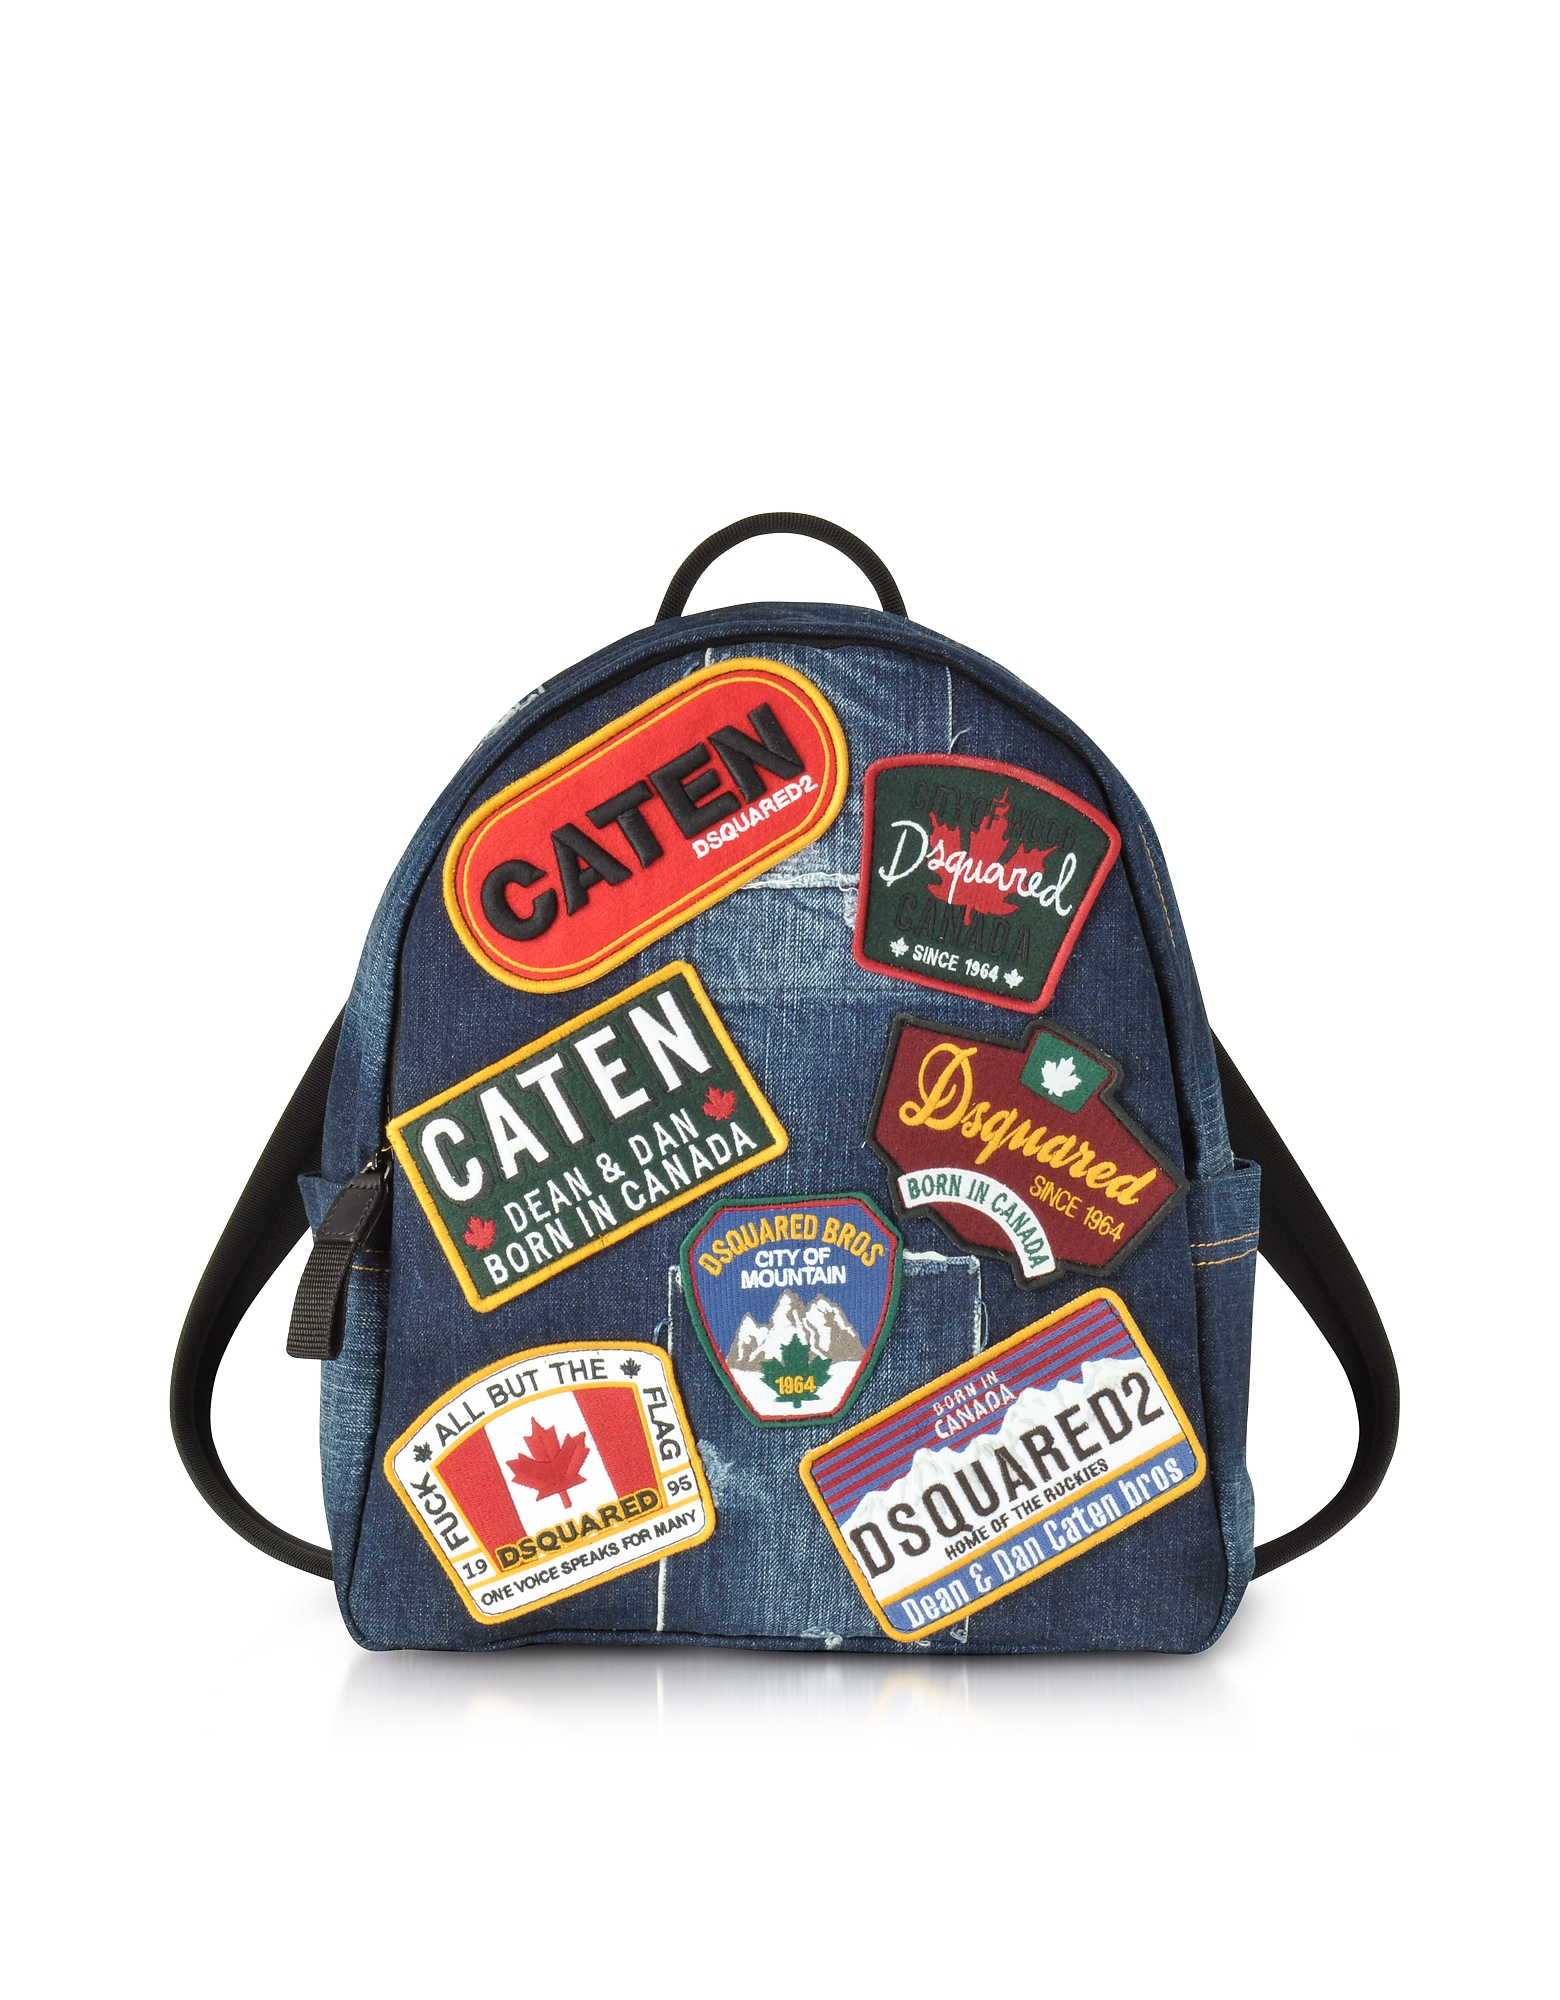 DSquared2 Backpacks, Denim Destroyed Men's Backpack w/Patches